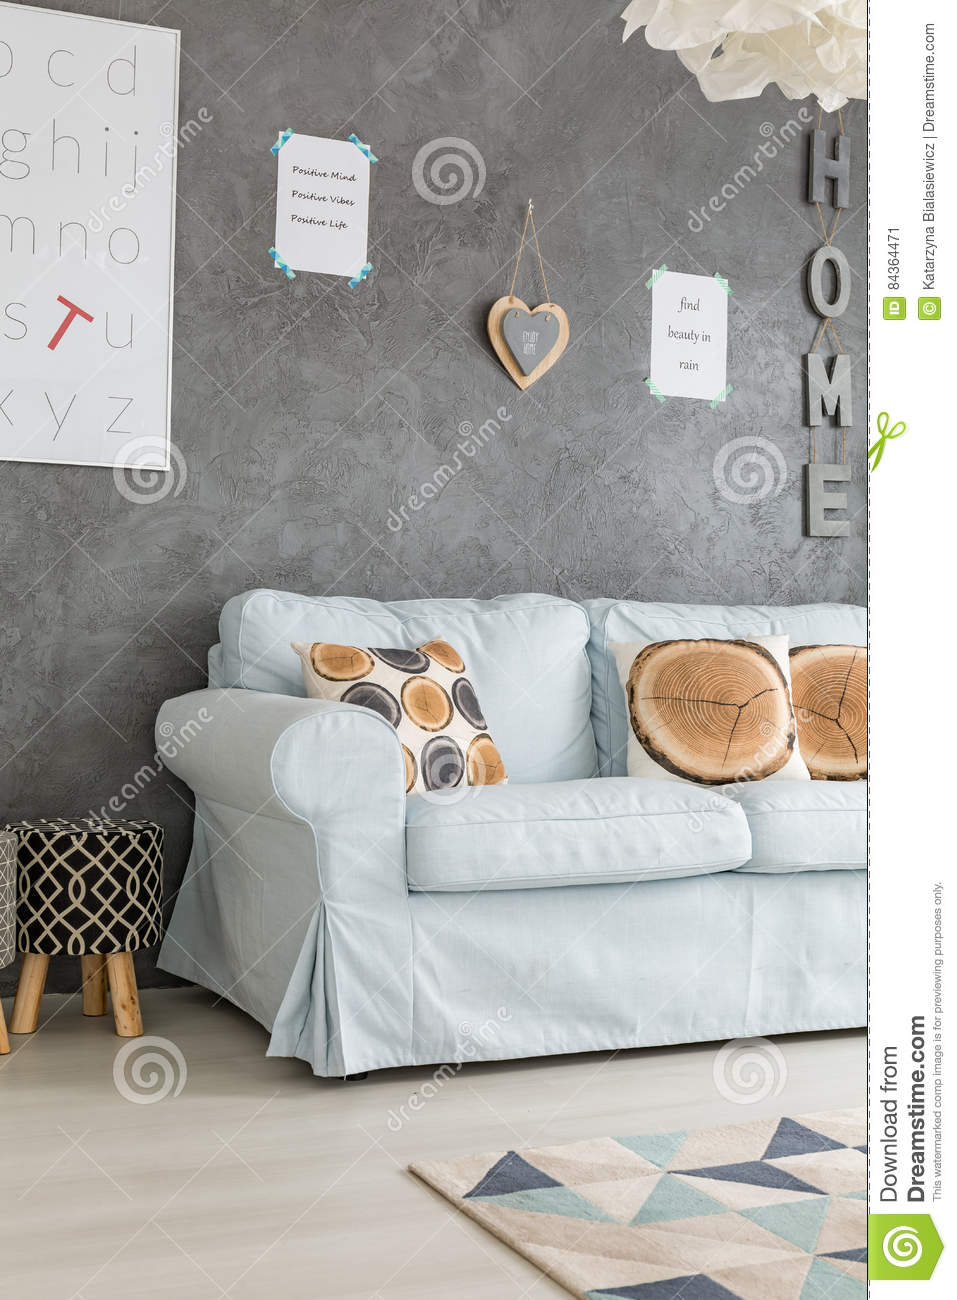 Quotes On Sofa Sofa In Living Room Stock Image Image Of Quotes Light 84364471